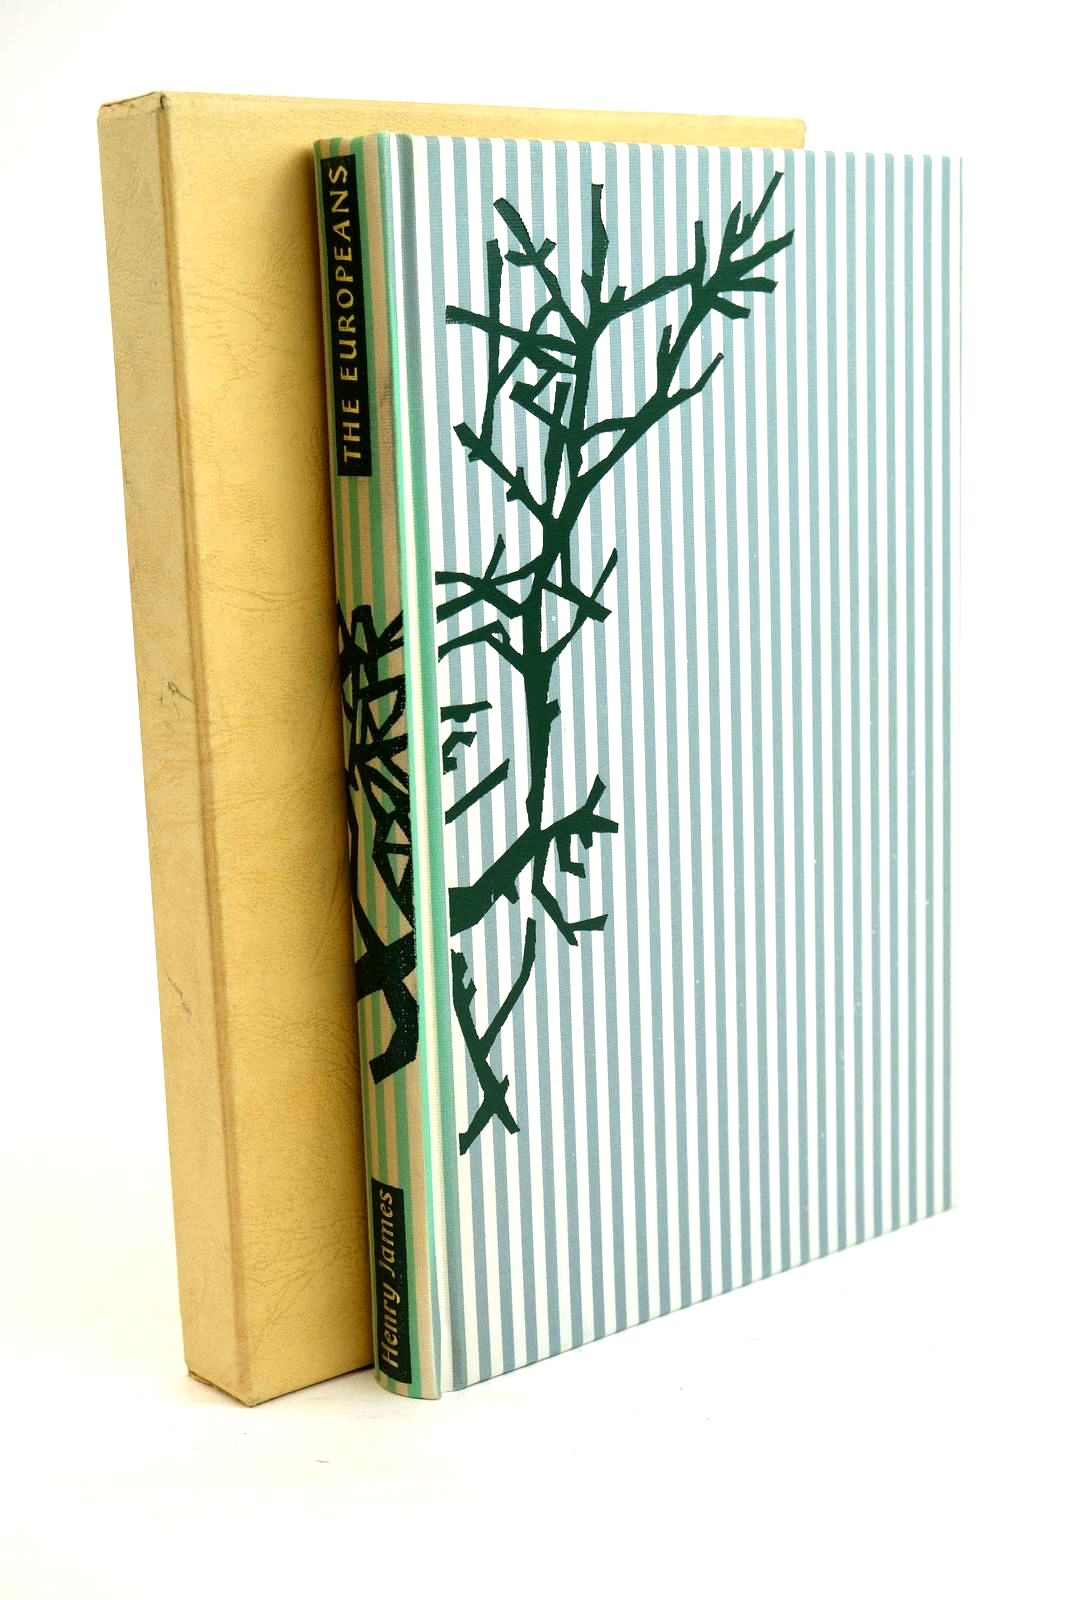 Photo of THE EUROPEANS written by James, Henry Phelps, Gilbert illustrated by Jacques, Robin published by Folio Society (STOCK CODE: 1320350)  for sale by Stella & Rose's Books